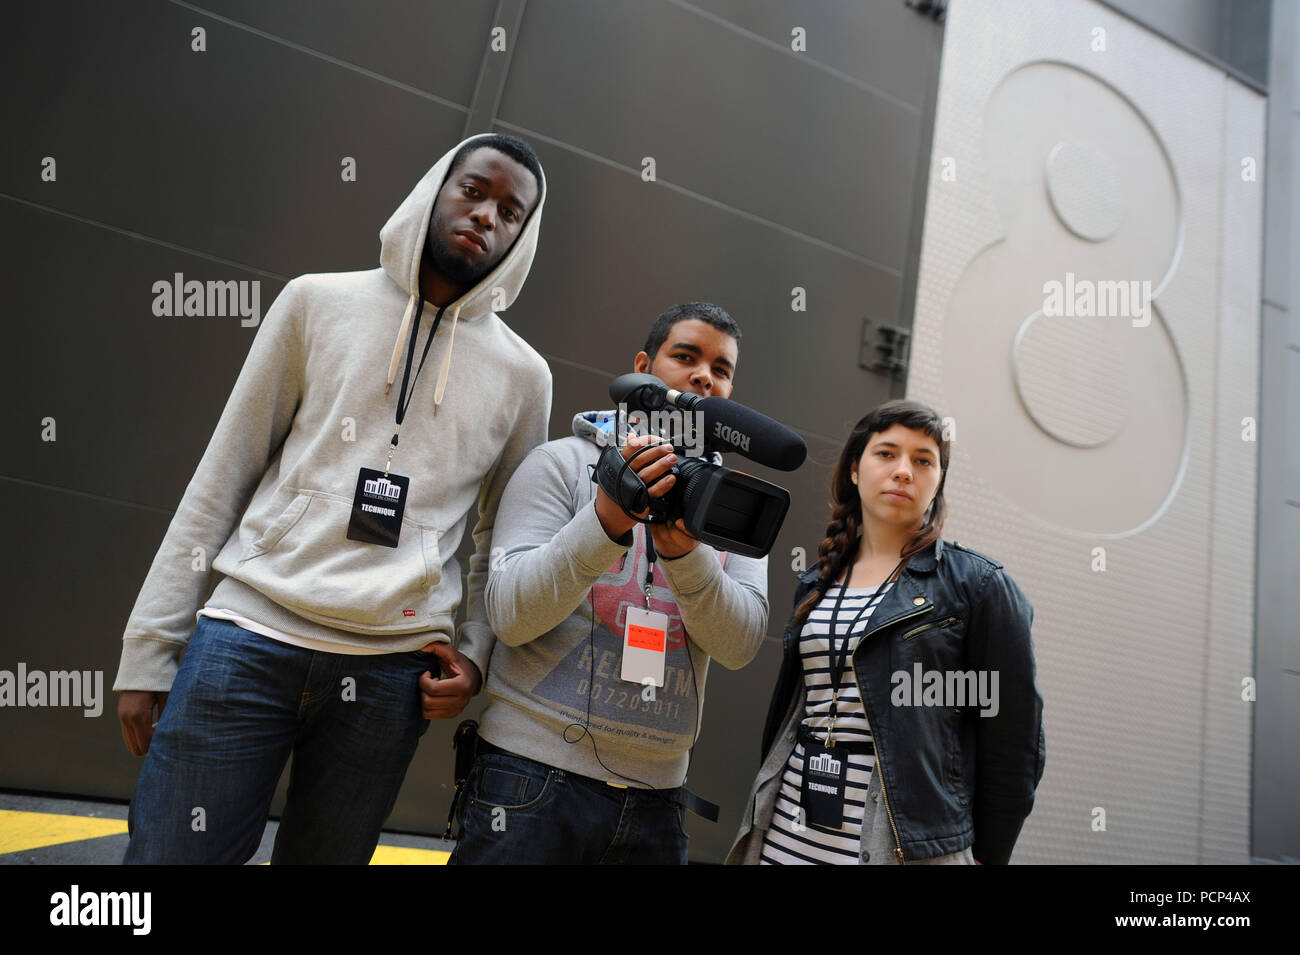 September 21, 2012 - Saint-Denis, France: Students from Luc Besson's cinema school attend the opening of the 'cinema city' (Cite du Cinema) on the edge of Paris. The 170-million-euros project is the largest film studio facility ever built in France, which earned it the nickname 'Hollywood on Seine'. The former art deco power station compound houses nine state-of-the-art film sets, 20,000sq metres of office, and several carpentry, model-making, and costume workshops. Des etudiants en cinema de l'Žcole de Luc Besson assistent a l'inauguration de la Cite du cinema. *** FRANCE OUT / NO SALES TO FR - Stock Image